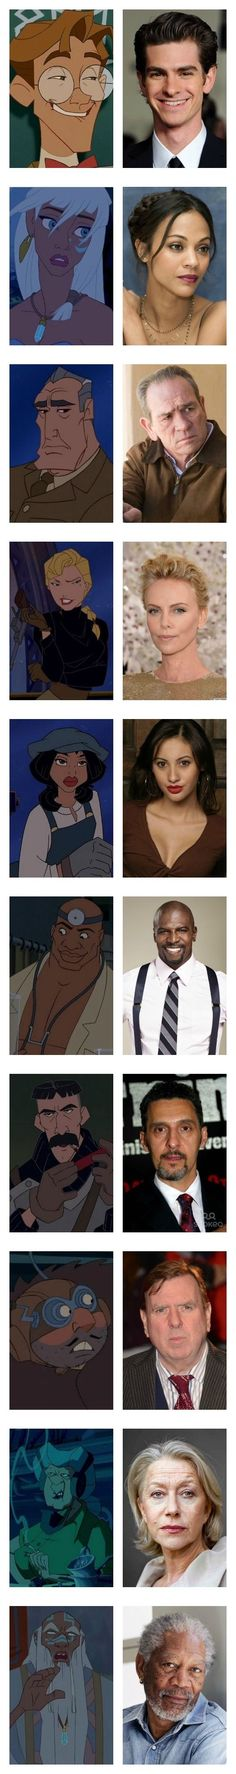 OKAY DISNEY IM WAITING FOR MY LIVE ACTION MOVIE WITH THIS CAST NOW!!! Atlantis forever